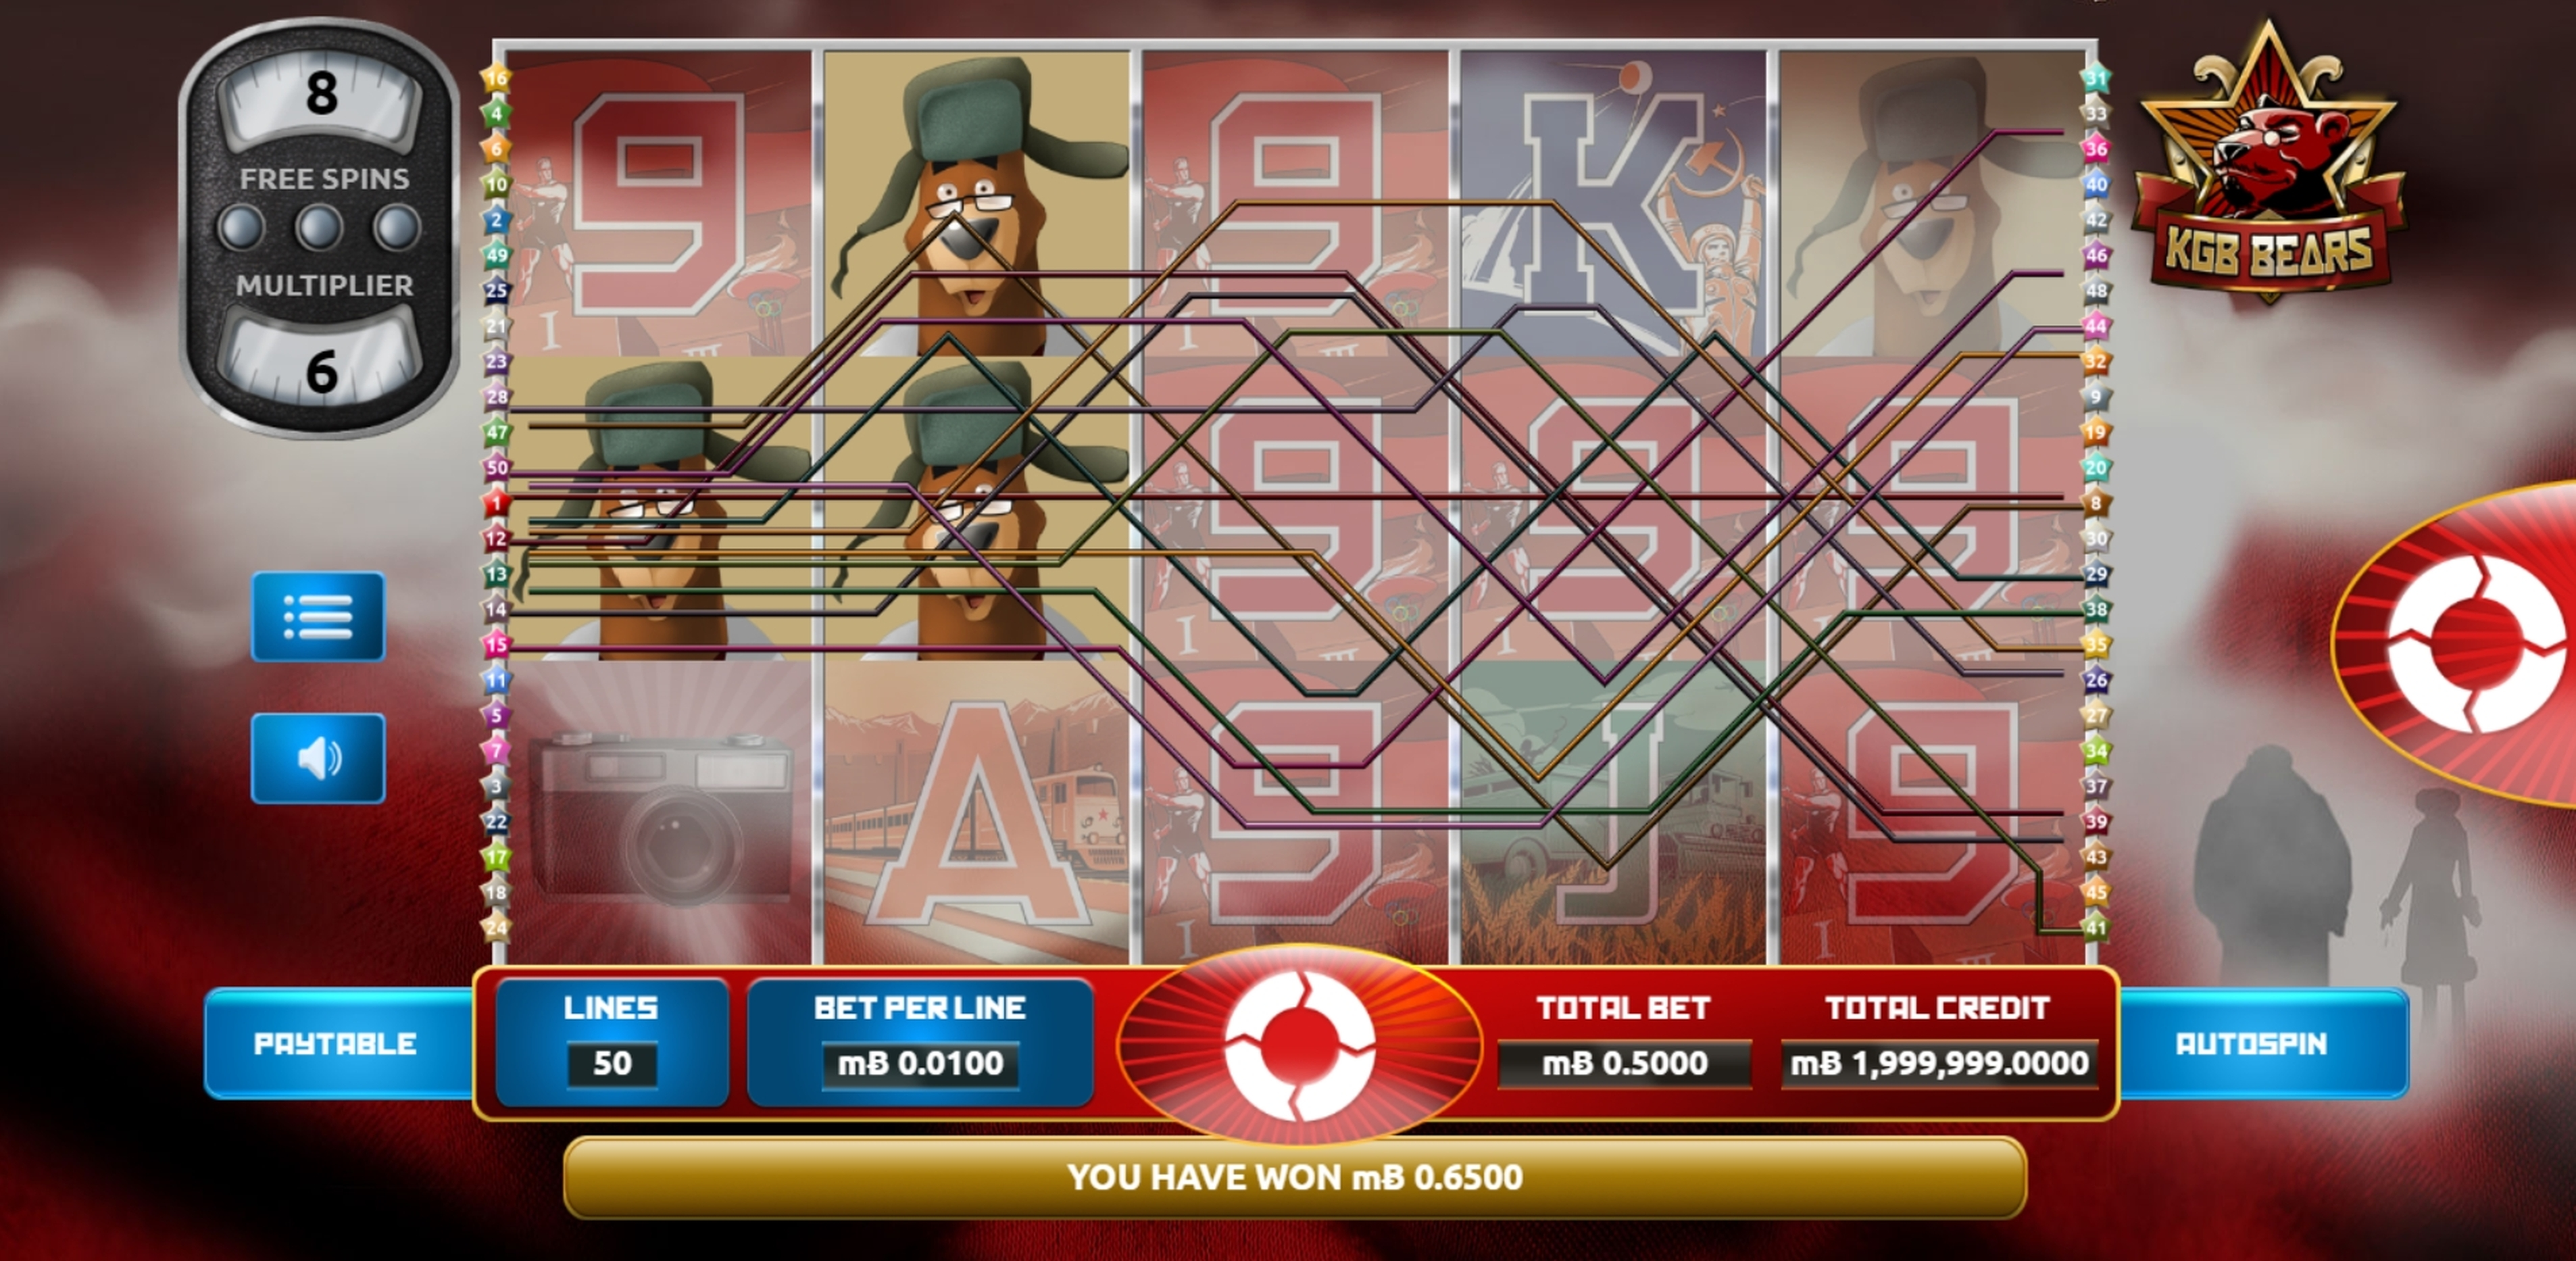 Win Money in KGB Bears Free Slot Game by The Games Company